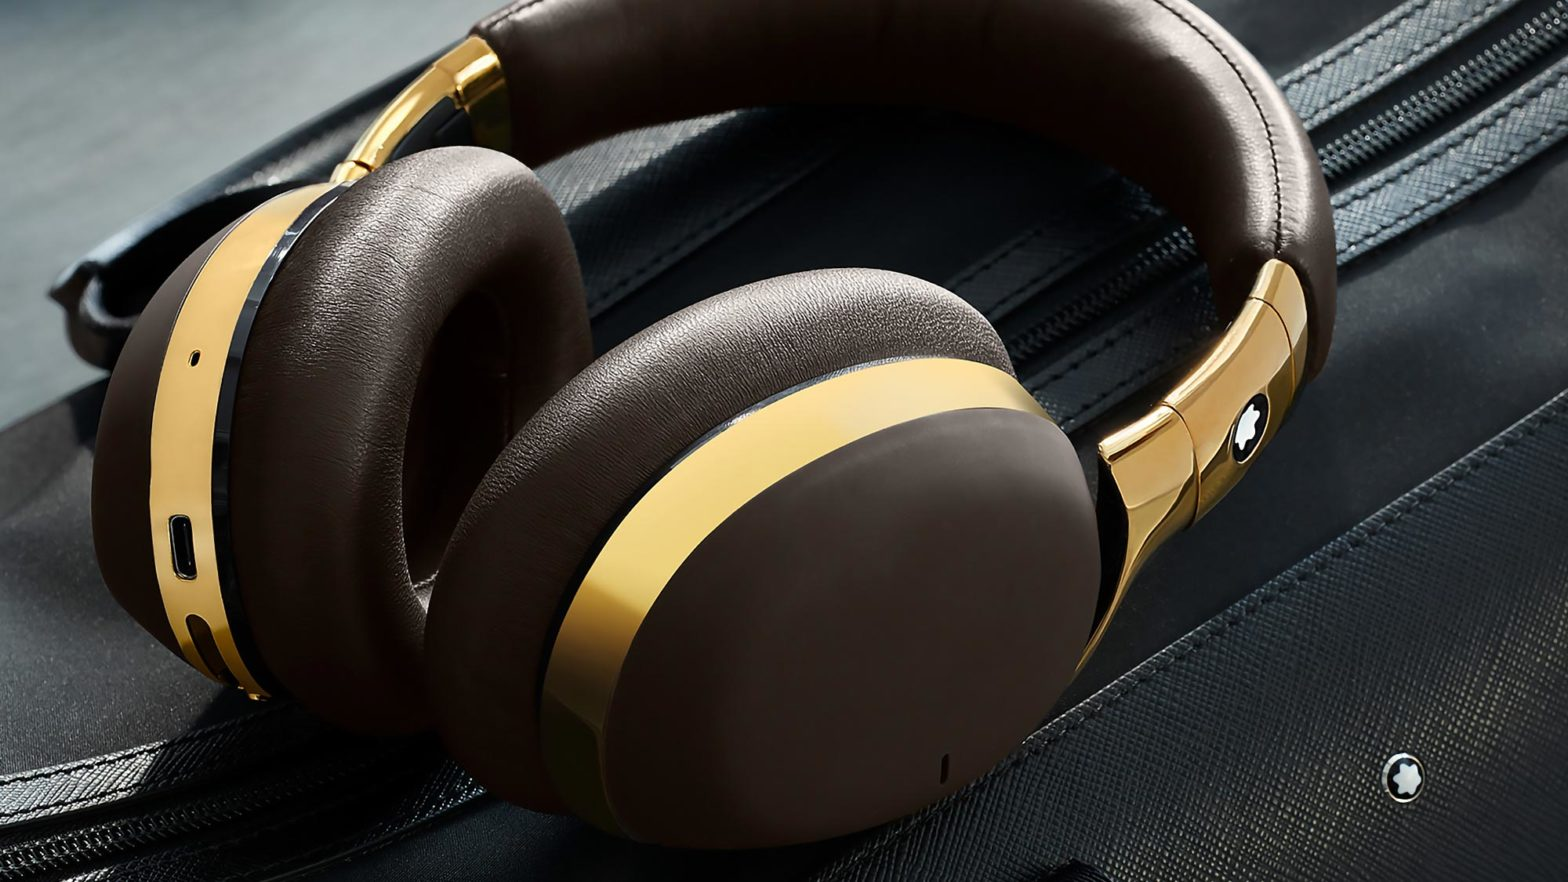 Montblanc MB 01 Headphones Costs $595